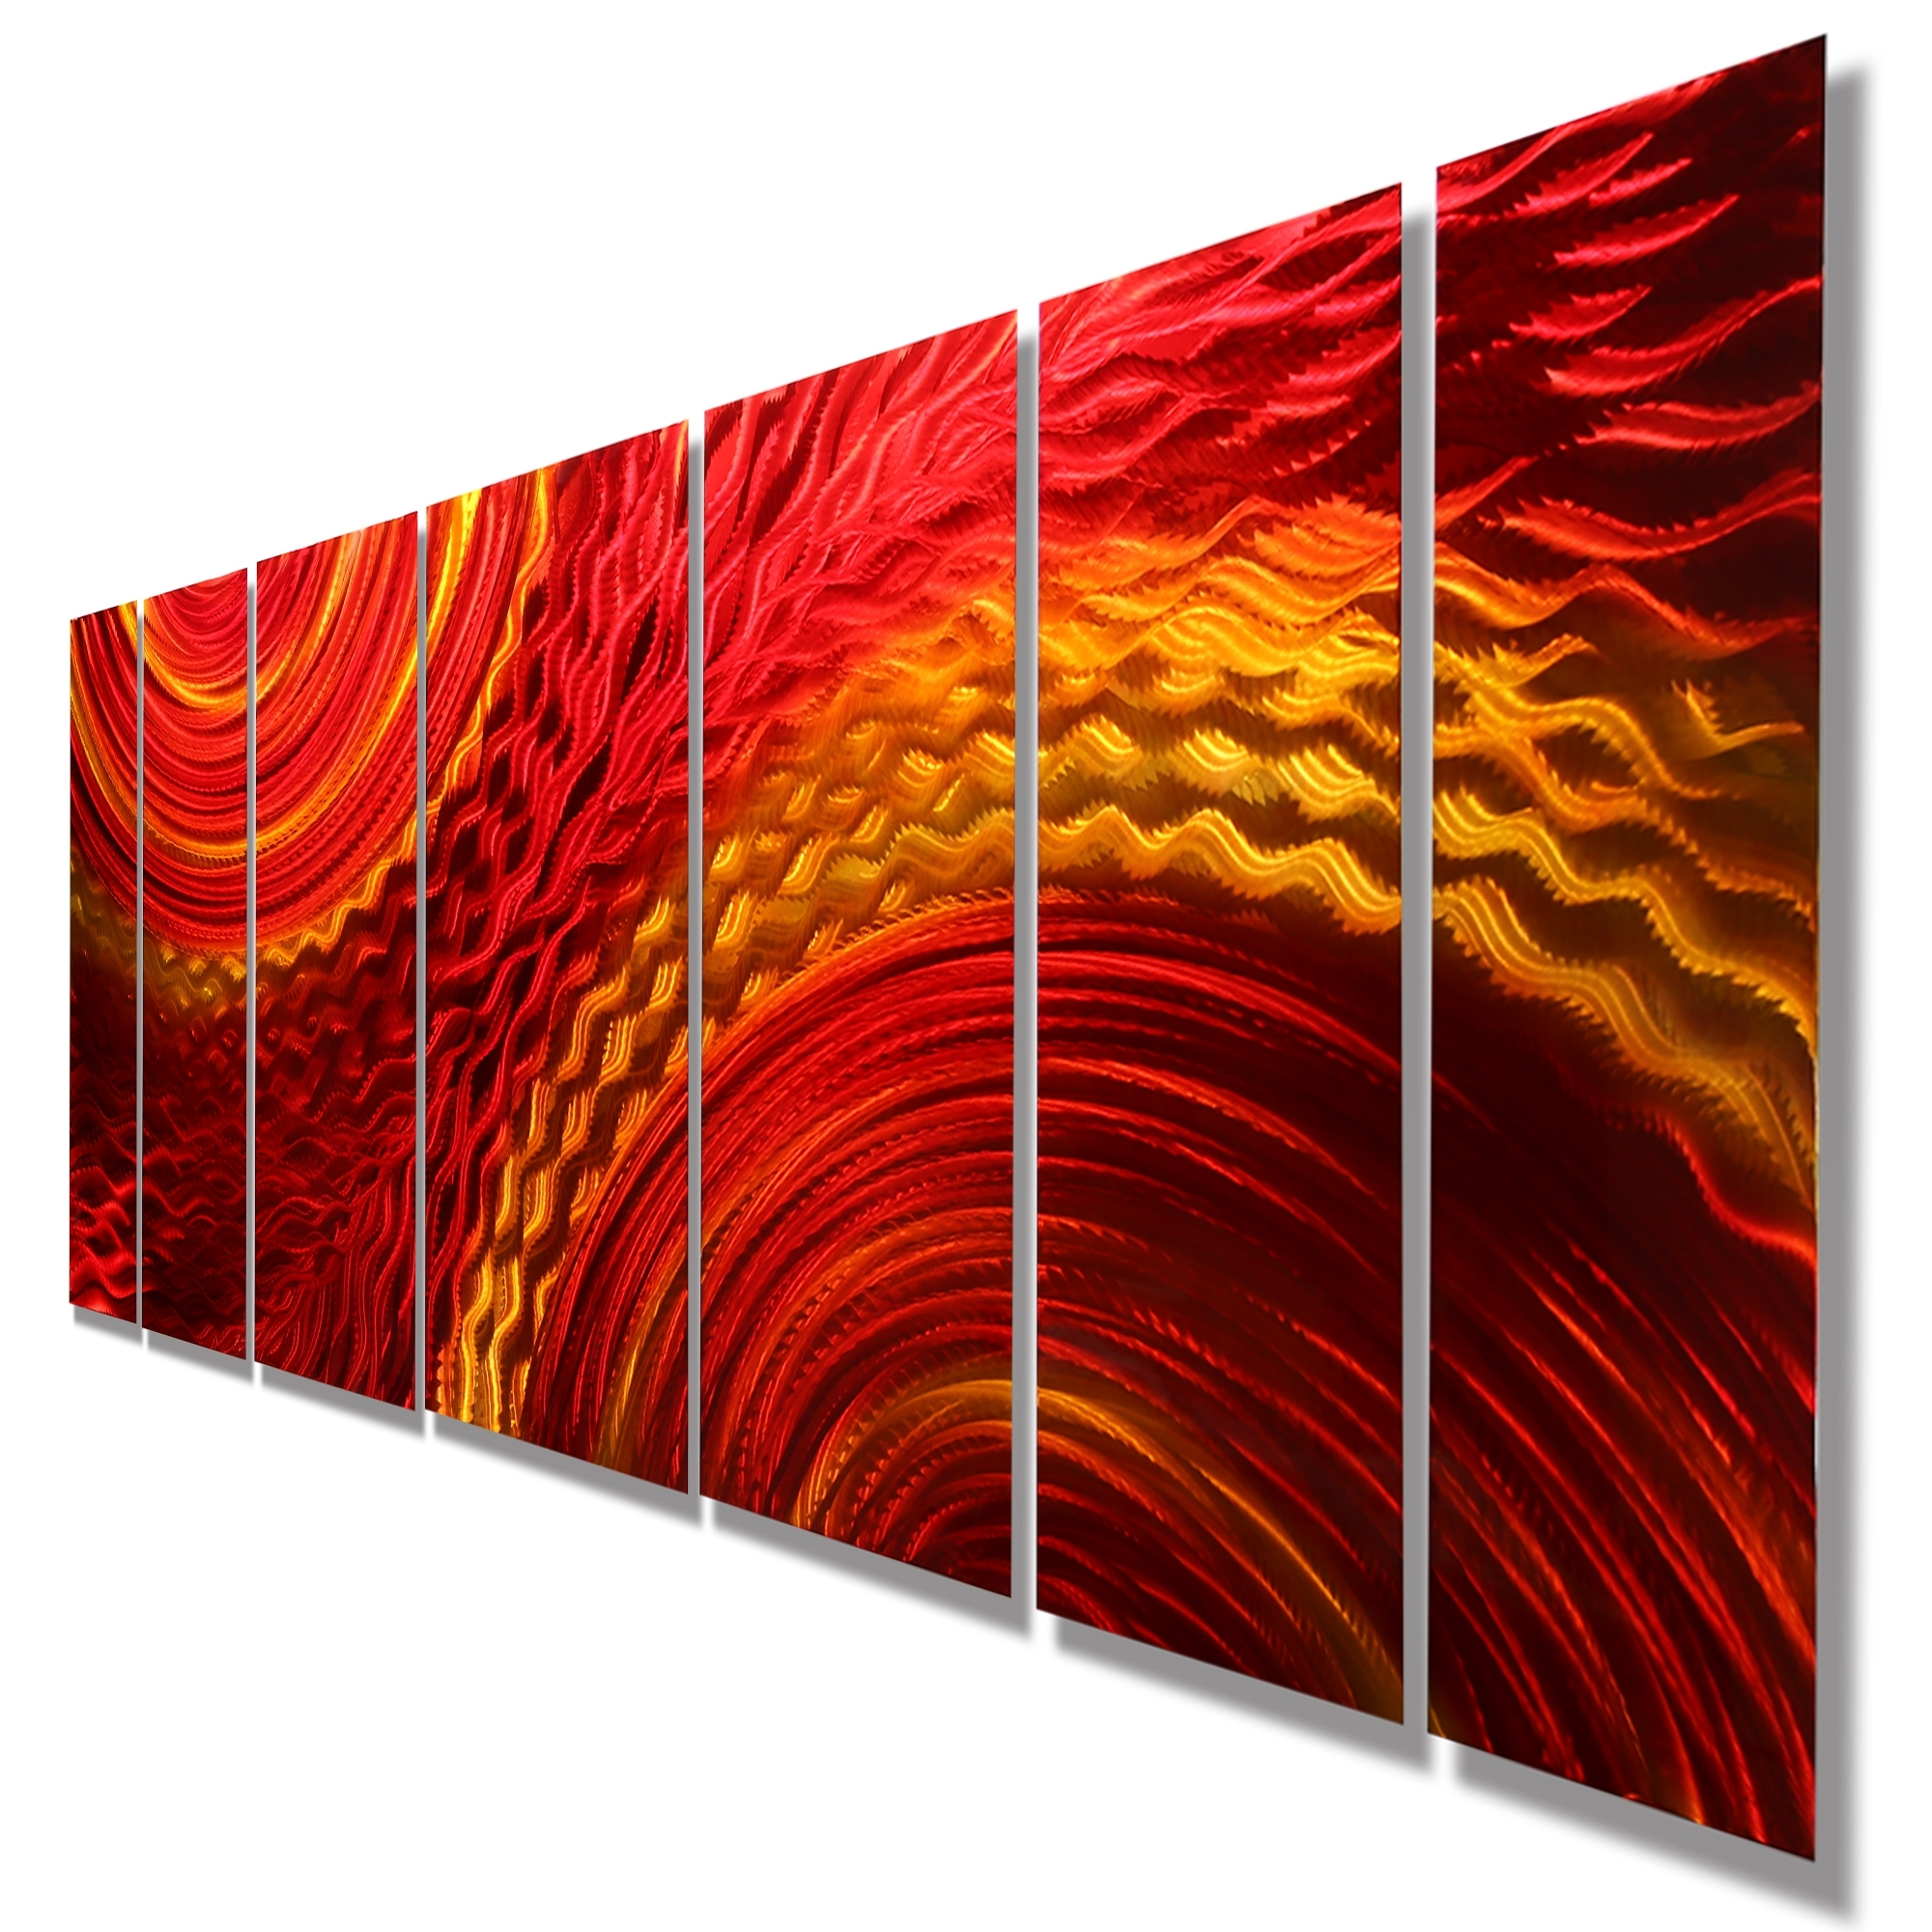 Home Decor: Alluring Abstract Metal Wall Art With Harvest Moods Xl Within 2017 Australian Abstract Wall Art (View 5 of 20)